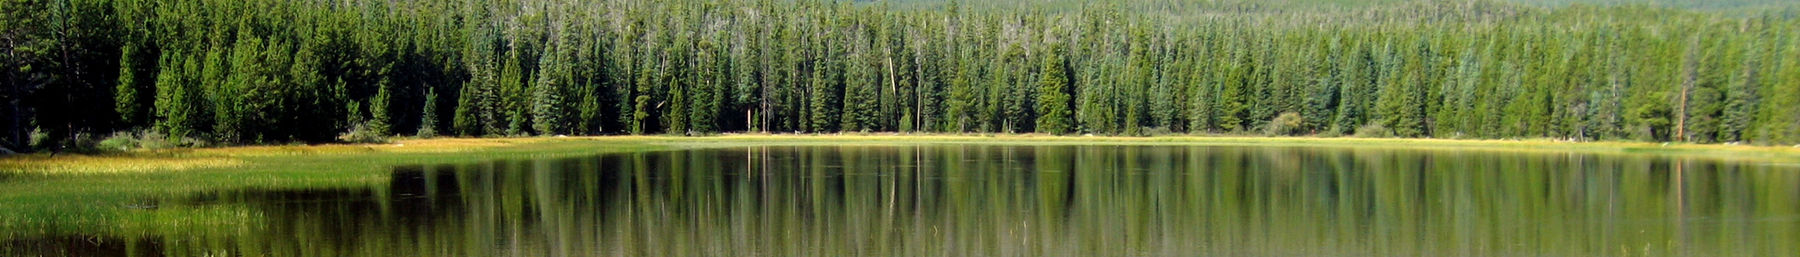 Reflection in Bierstadt Lake